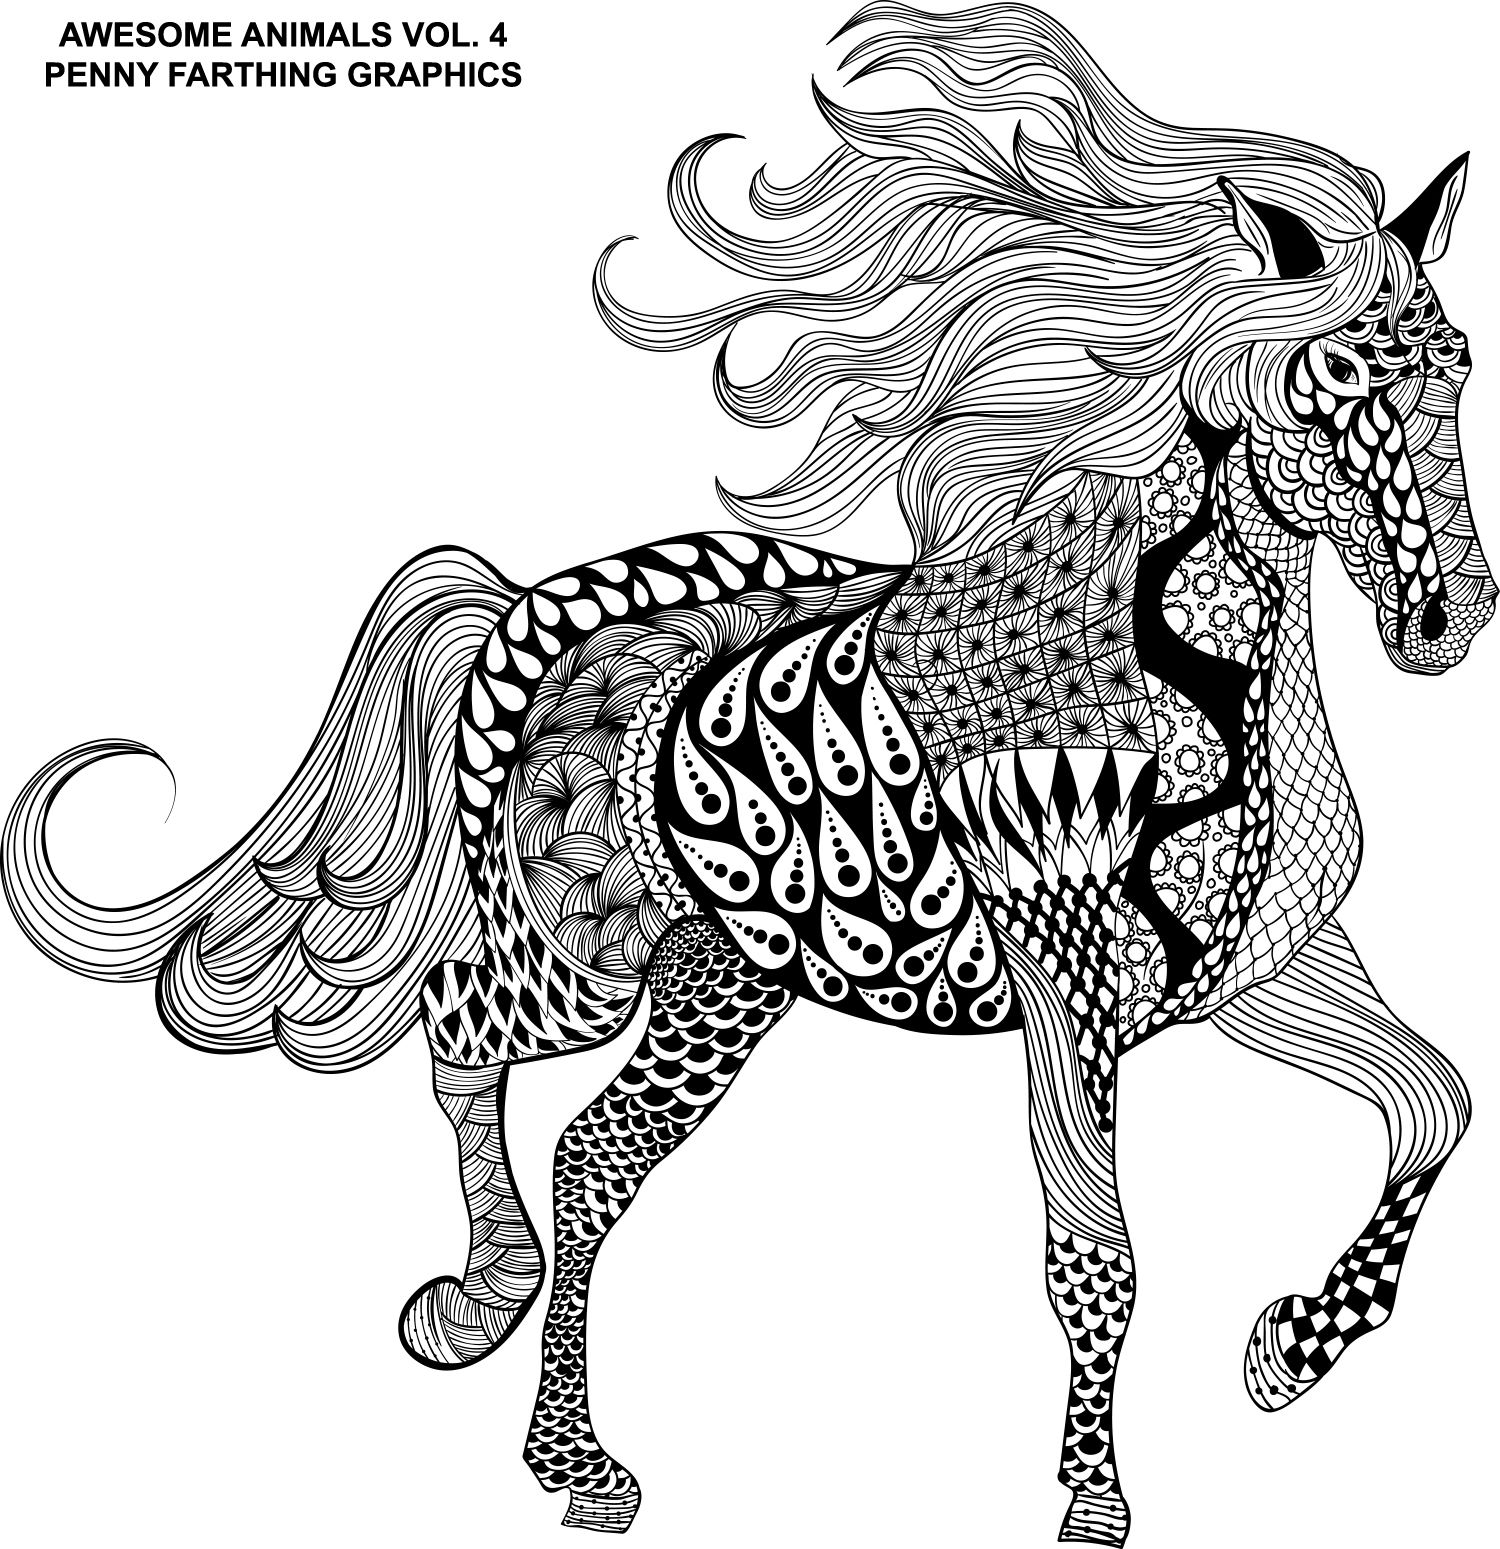 The Horse From Awesome Animals Vol 4